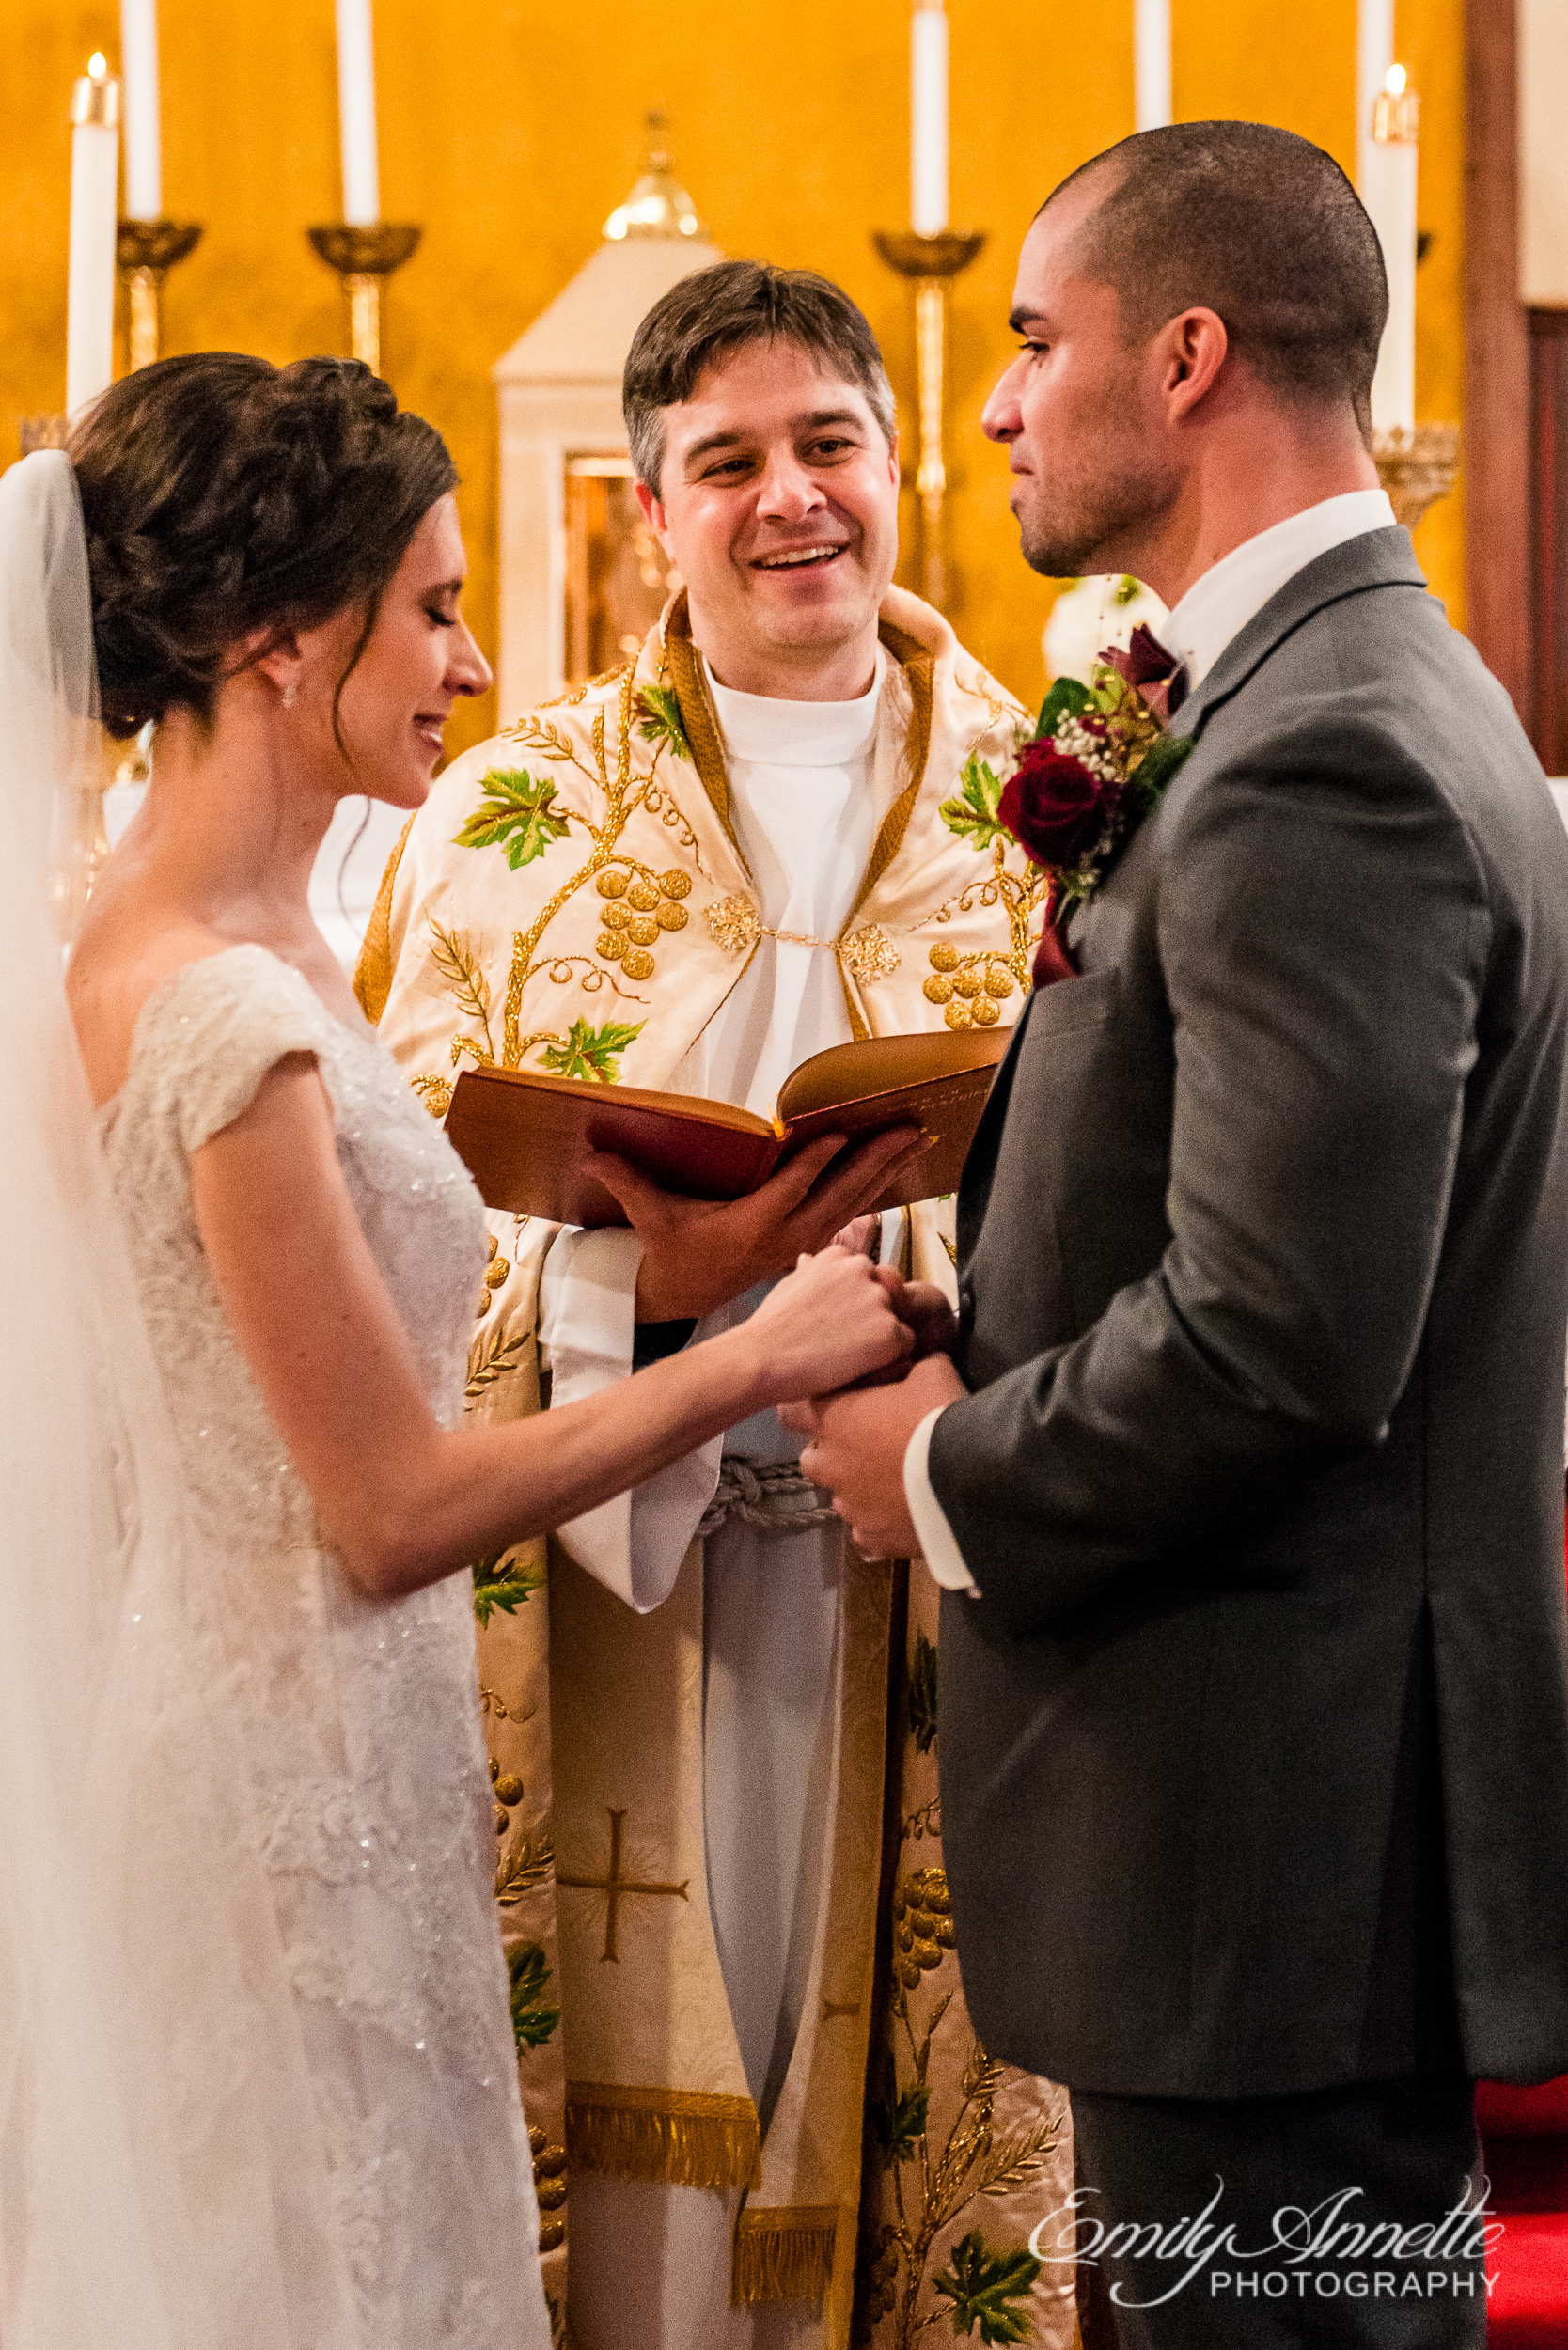 A winter wedding at the Chapel of the Immaculate Conception at St. John the Apostle Church in Leesburg, Virginia by Northern Virginia wedding photographer Emily Annette Photography aka Beauty of the Soul Studio